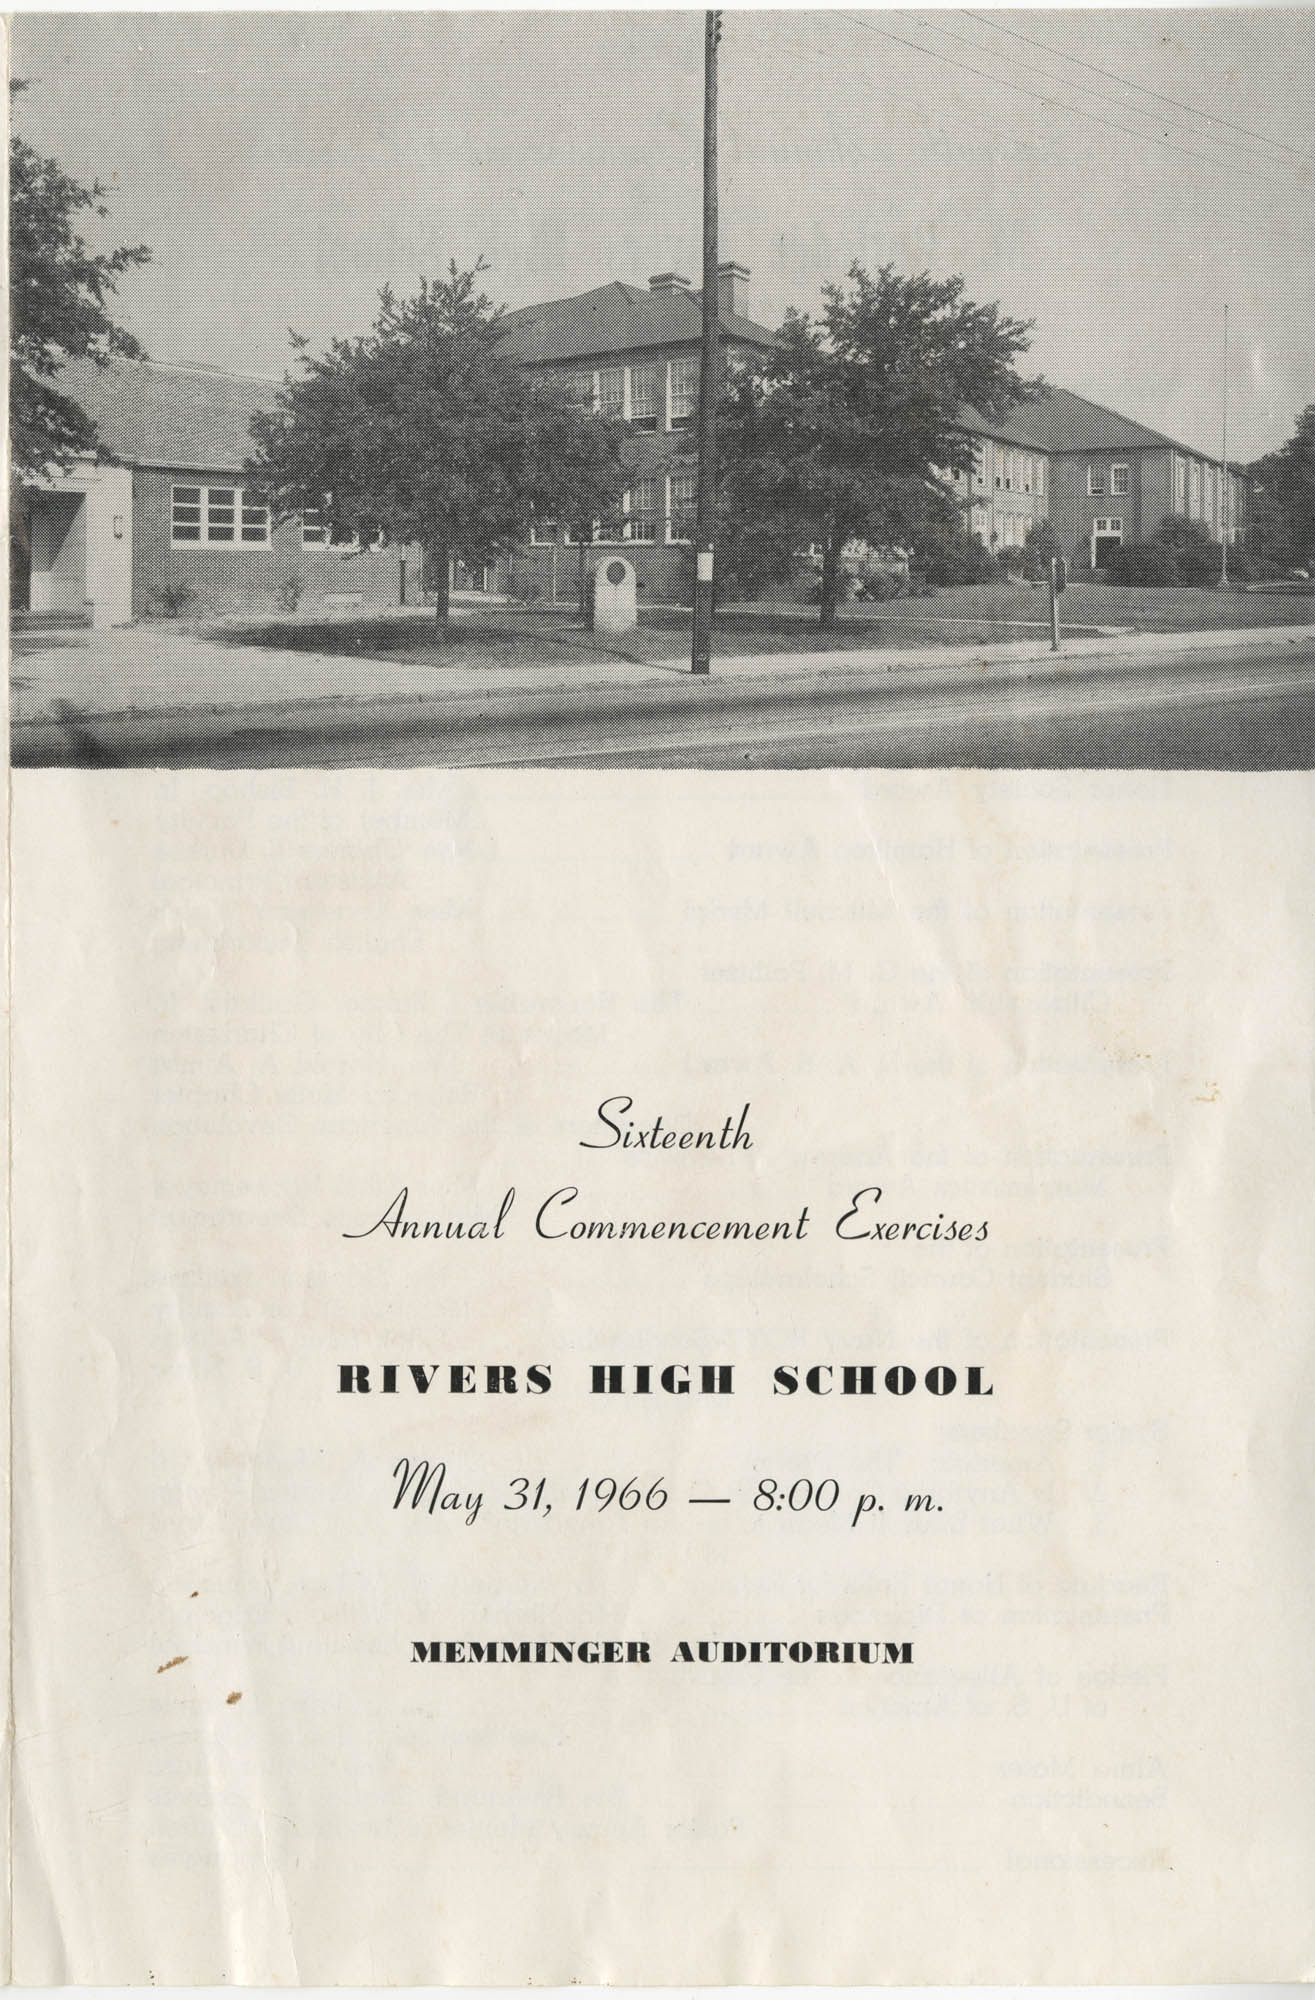 Sixteenth Annual Commencement Exercises for Rivers High School